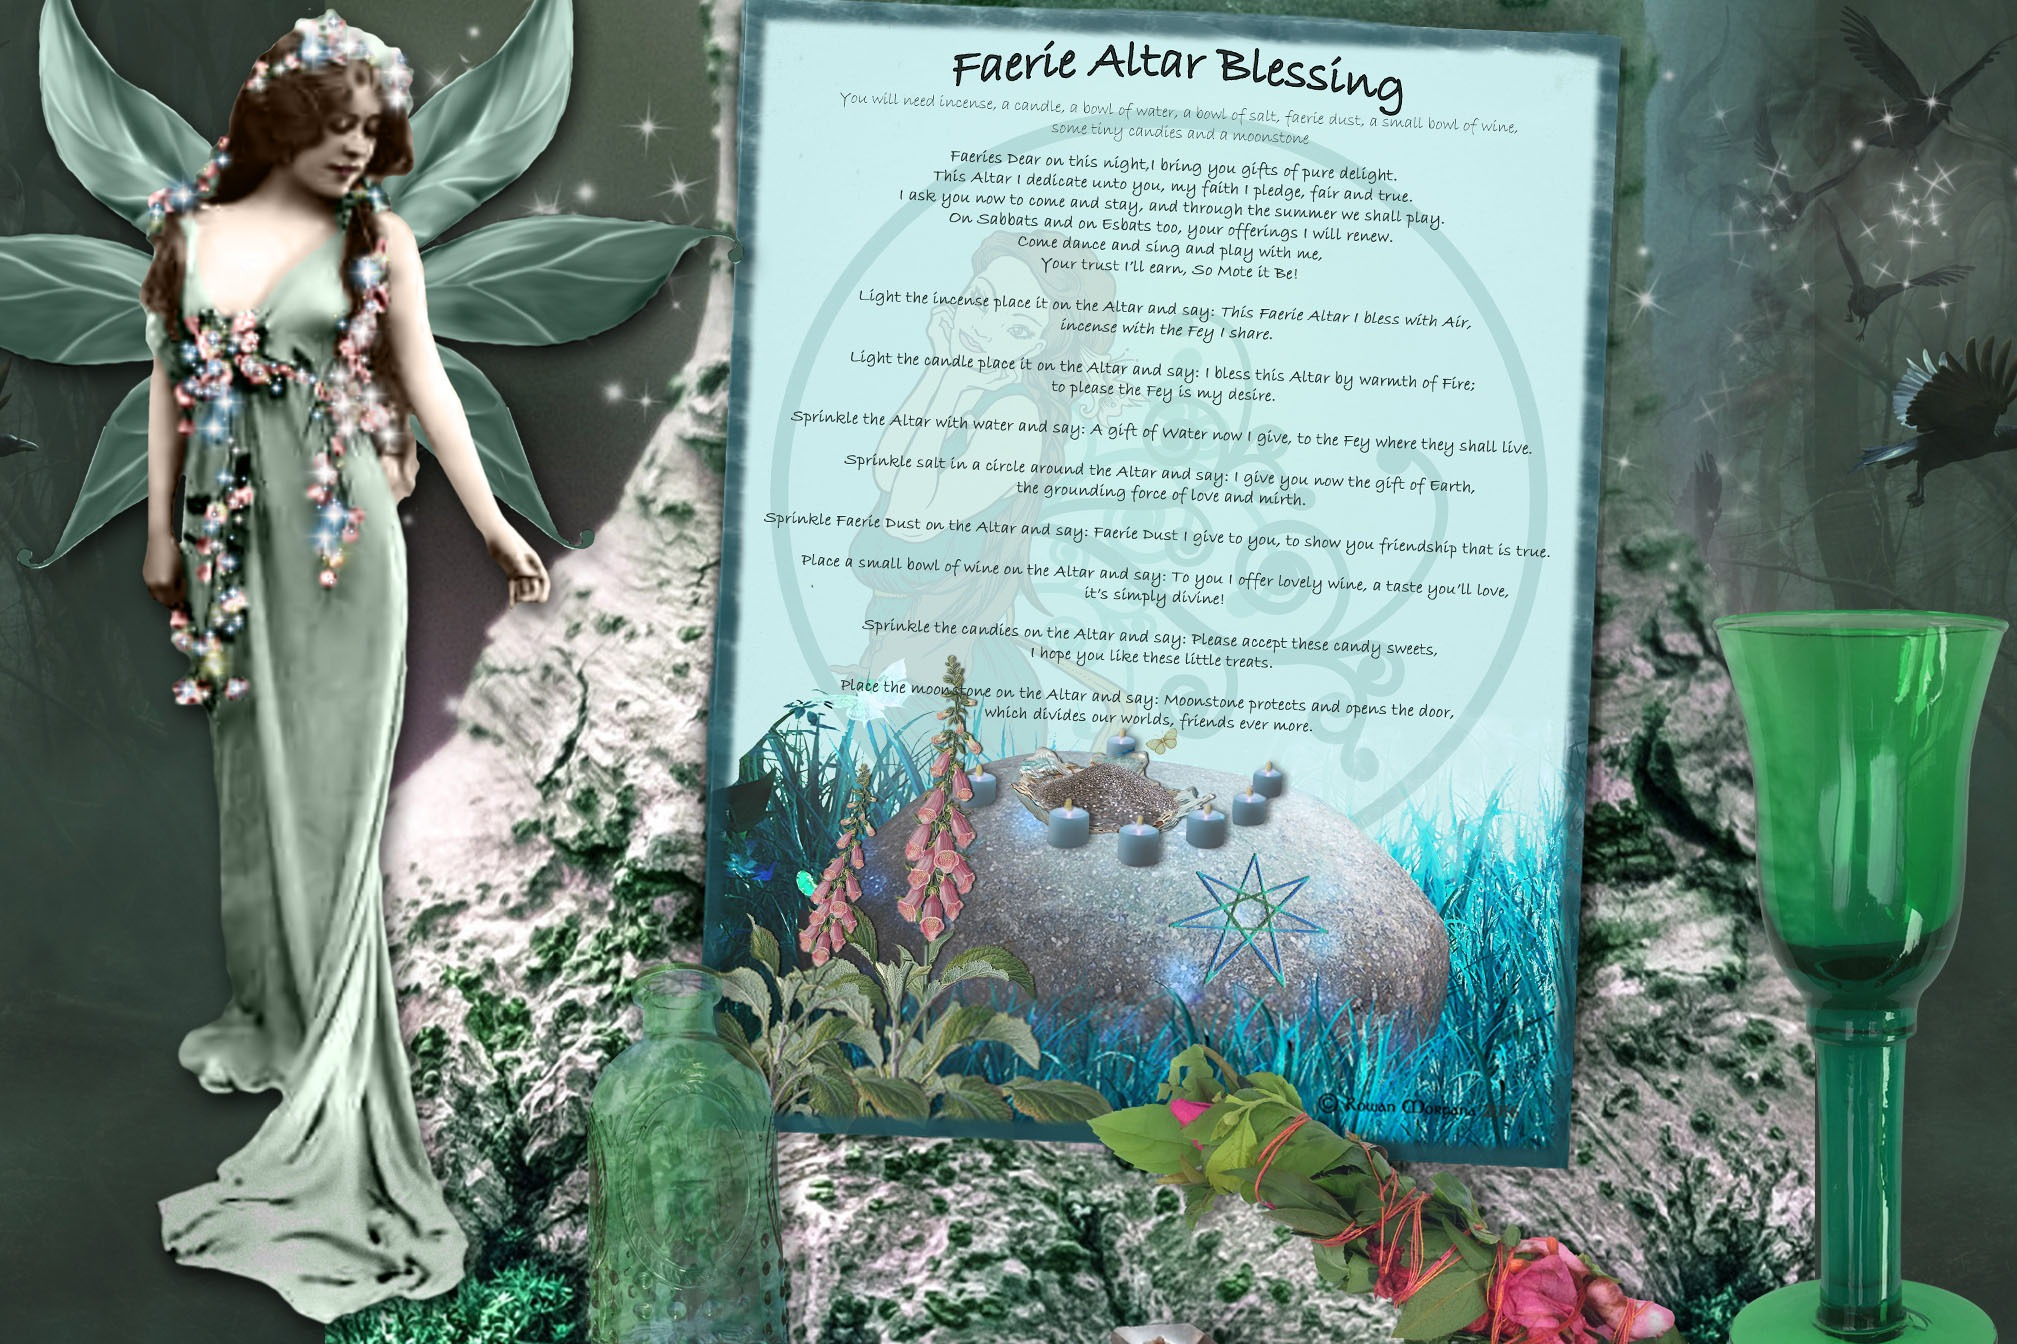 FAERIE ALTAR BLESSING Realm of the Fey Lore